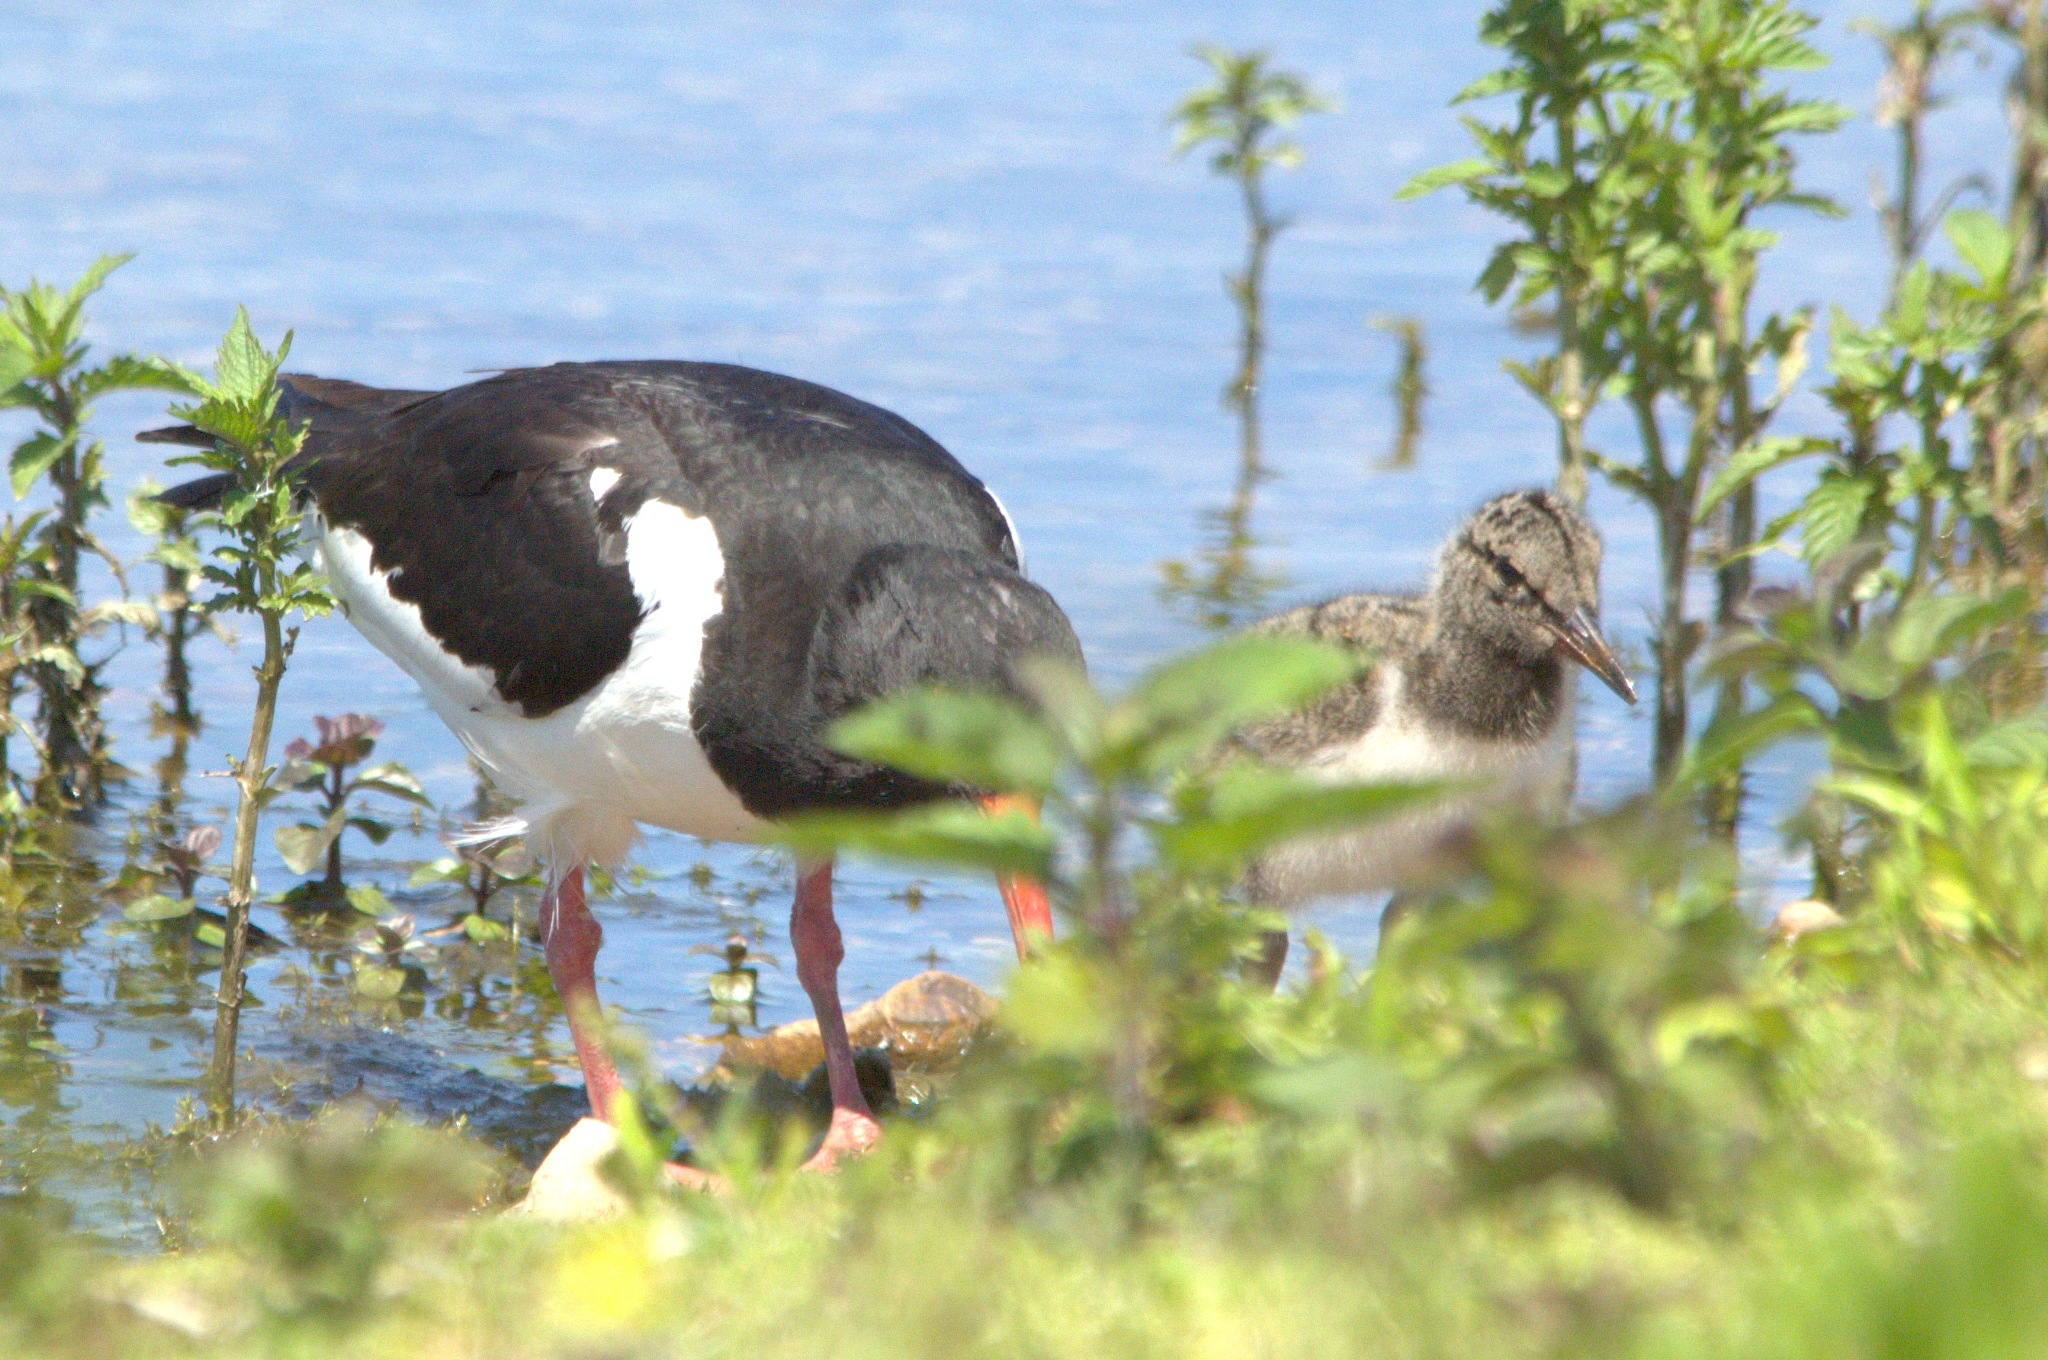 Oystercatcher with Chick by Rich66